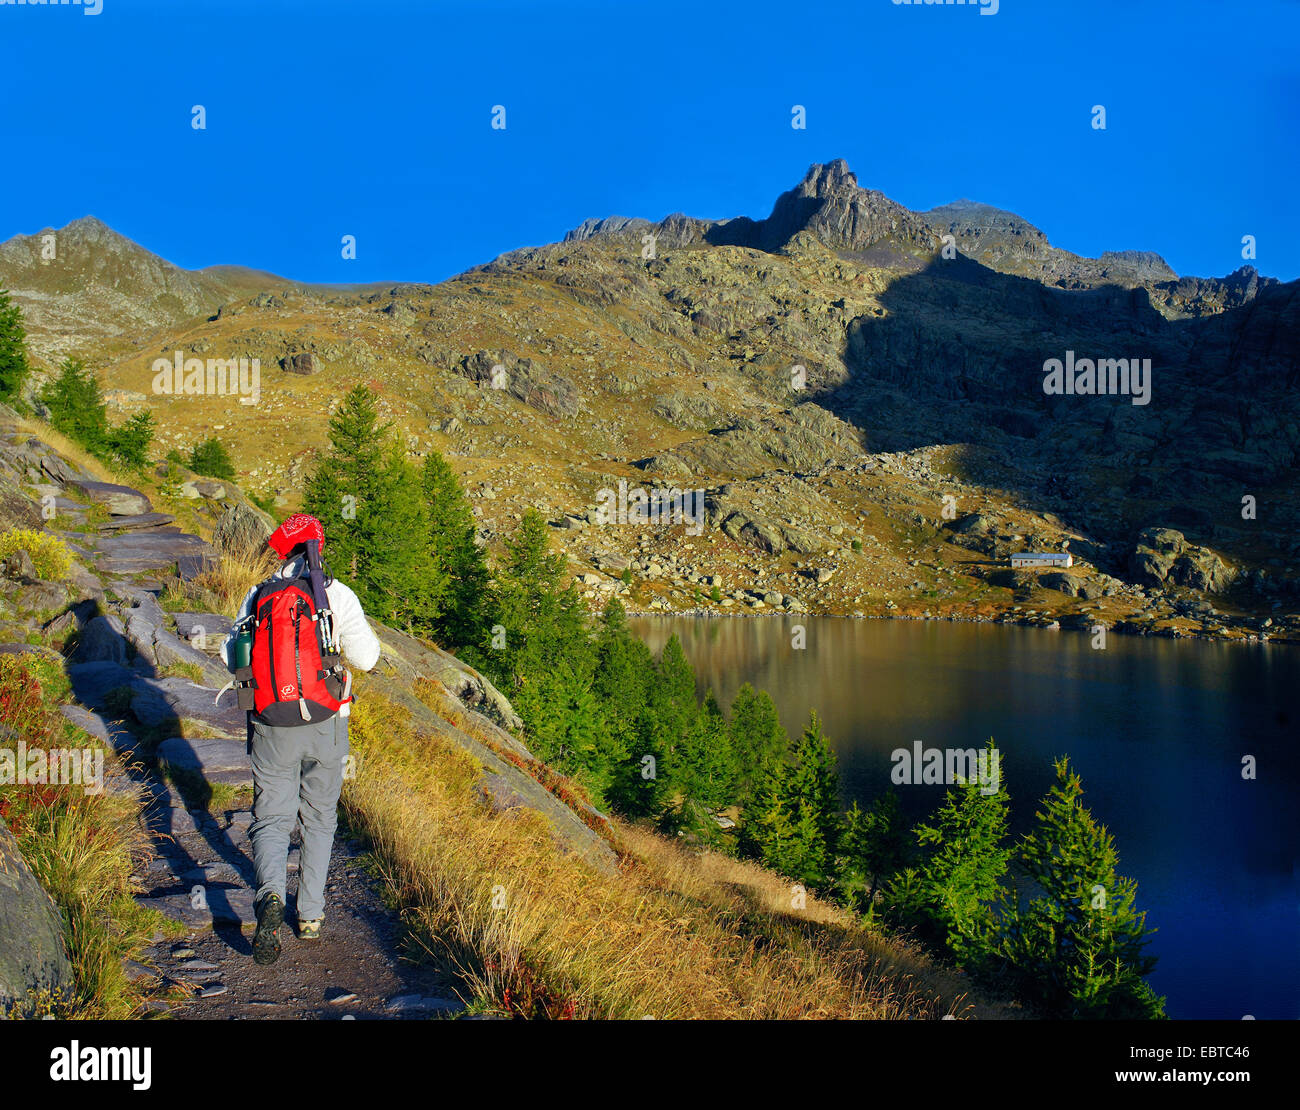 wanderer on a hiking path near the lake Lac Long Superieur, France, Alpes Maritimes, Mercantour National Park, Belvedere - Stock Image